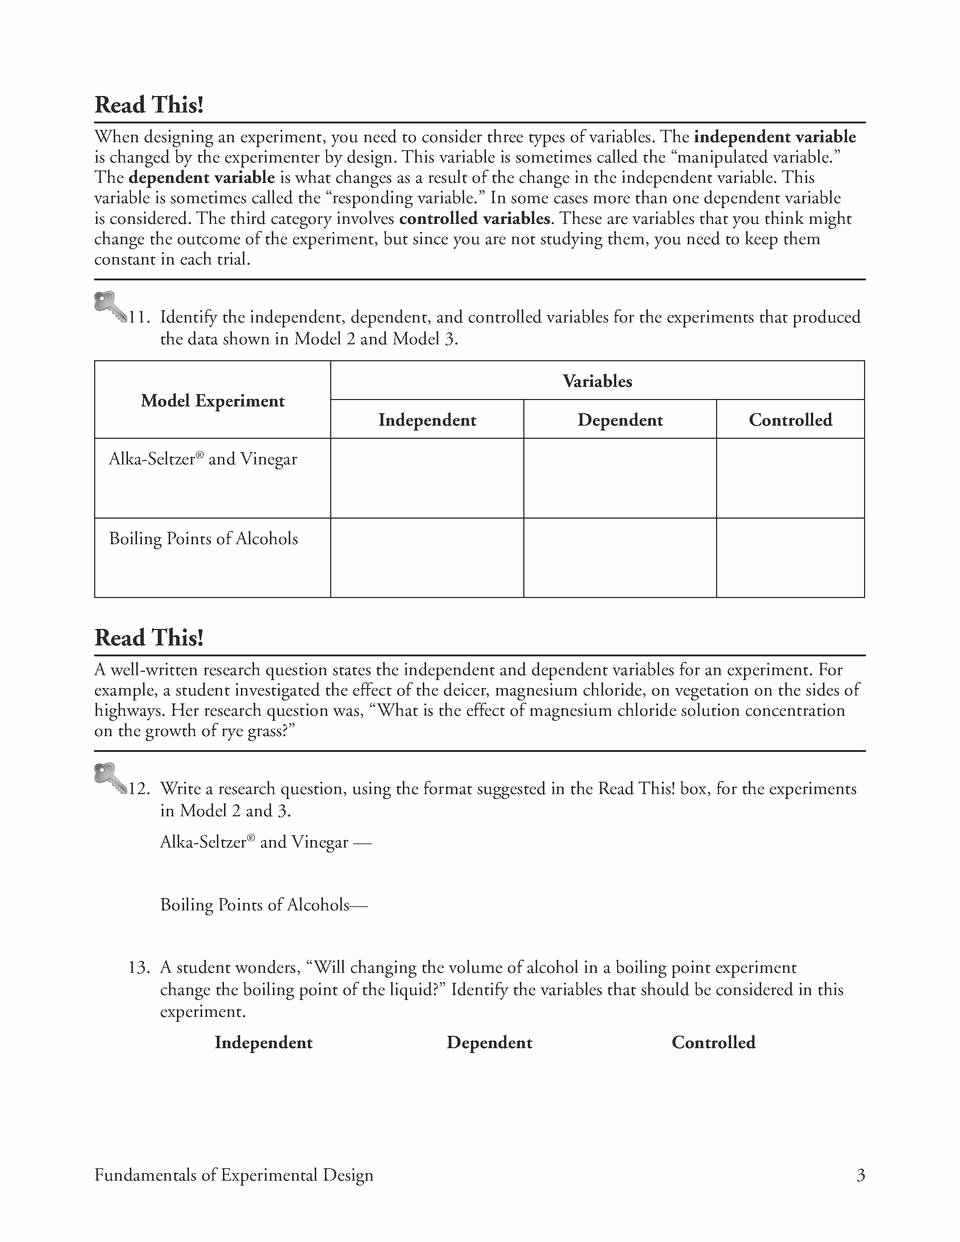 Experimental Design Worksheet Answers Lovely 3 Fundamentals Of Experimental D Simplebooklet